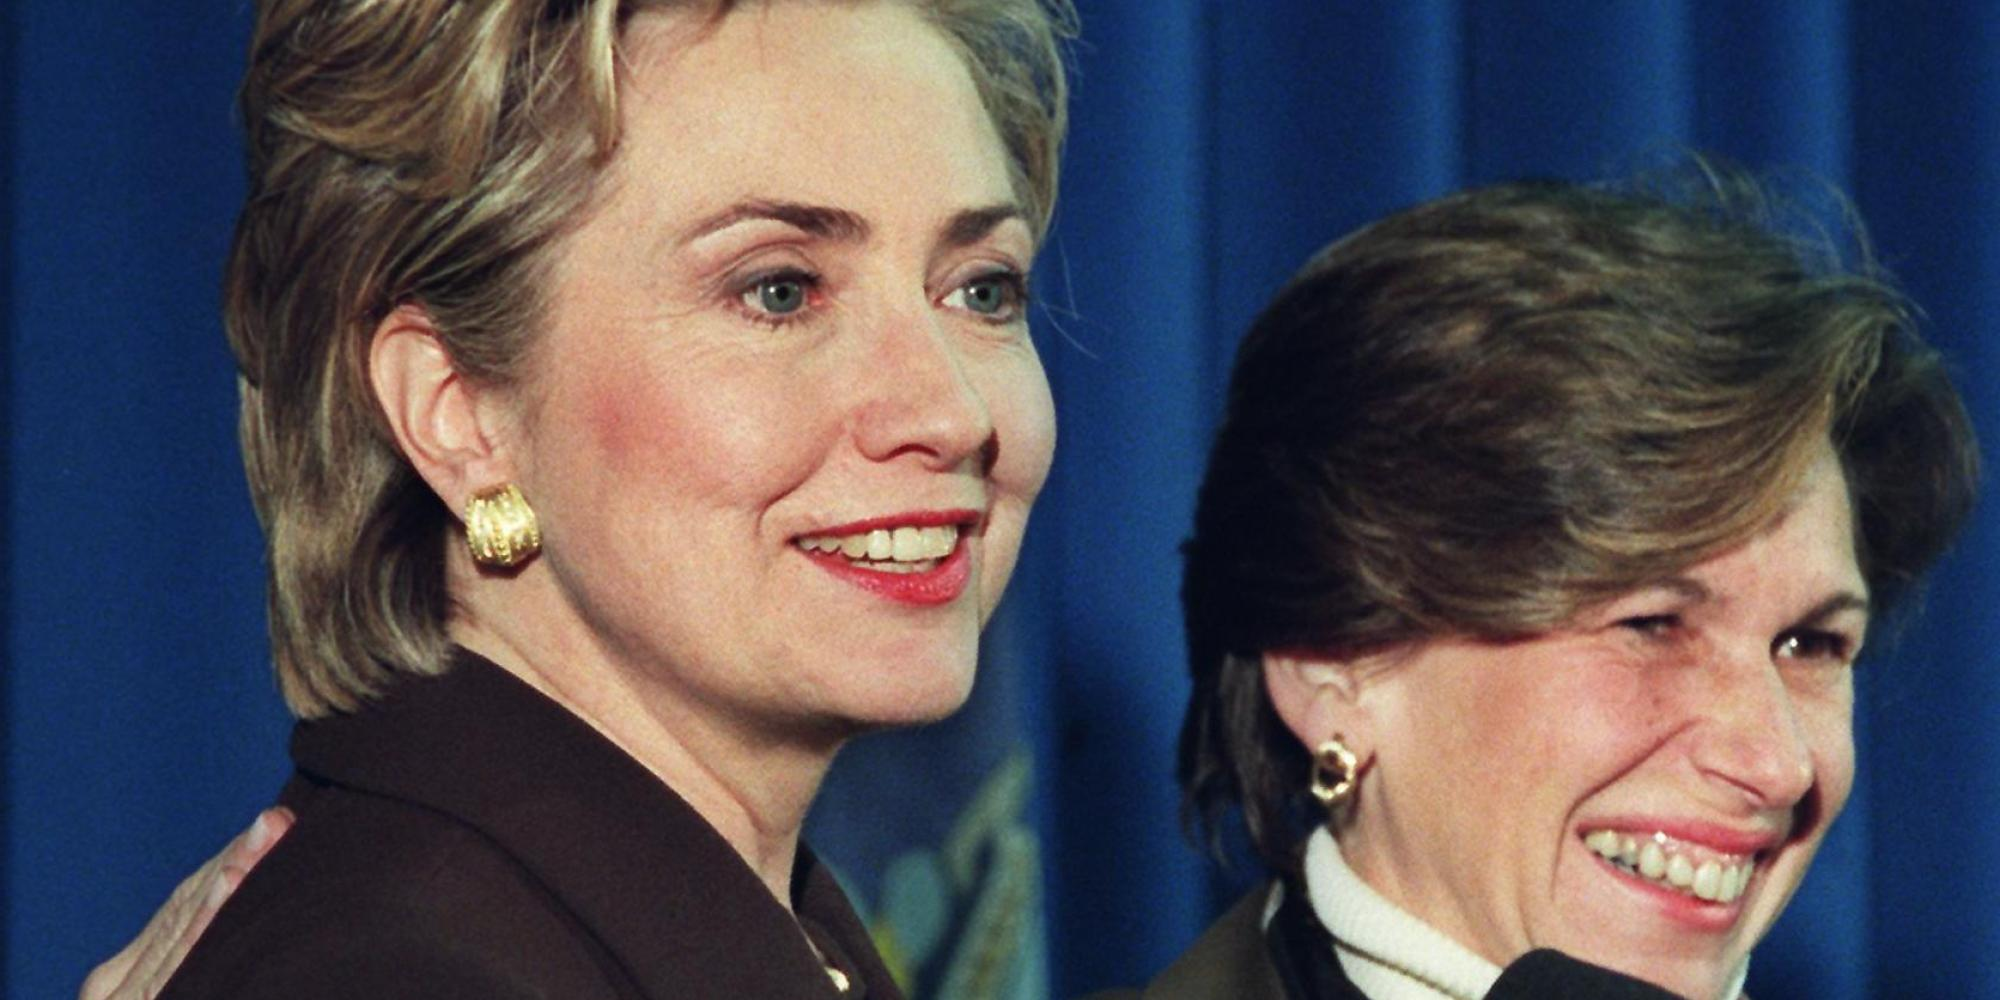 Randi Weingarten took flak from some AFT members for pushing for an early endorsement of Hillary Clinton.